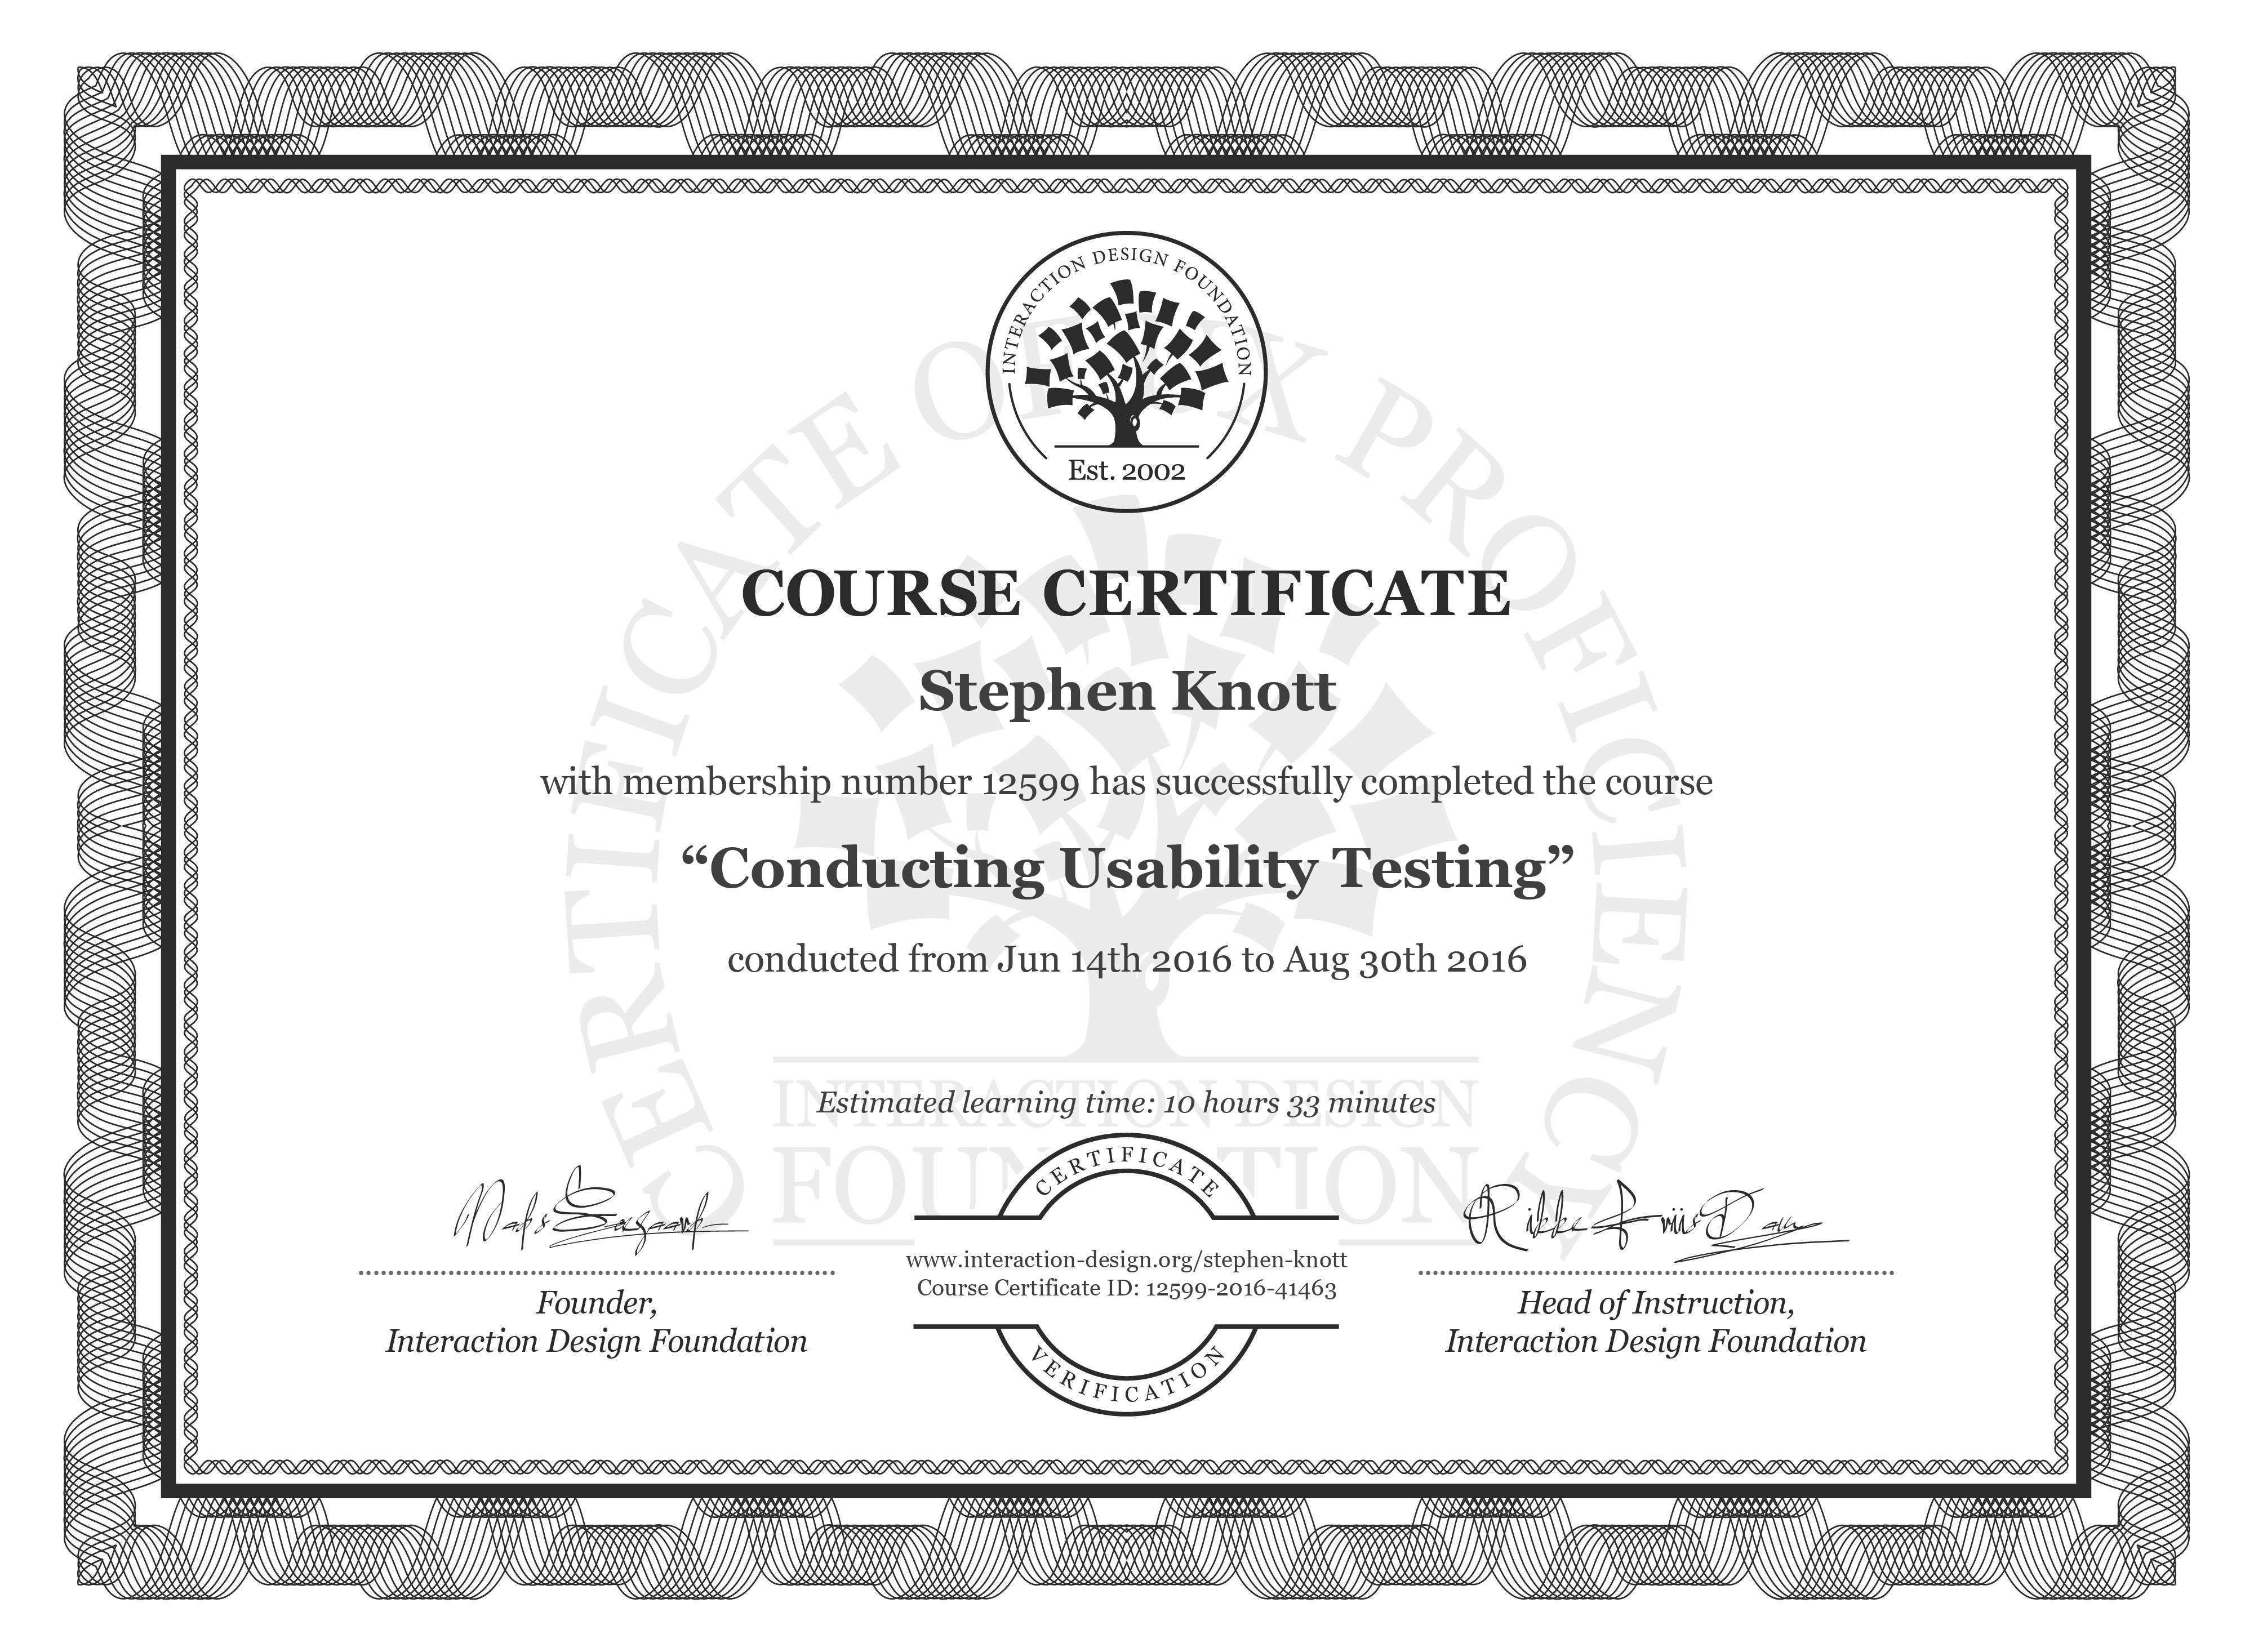 Stephen Knott: Course Certificate - Conducting Usability Testing